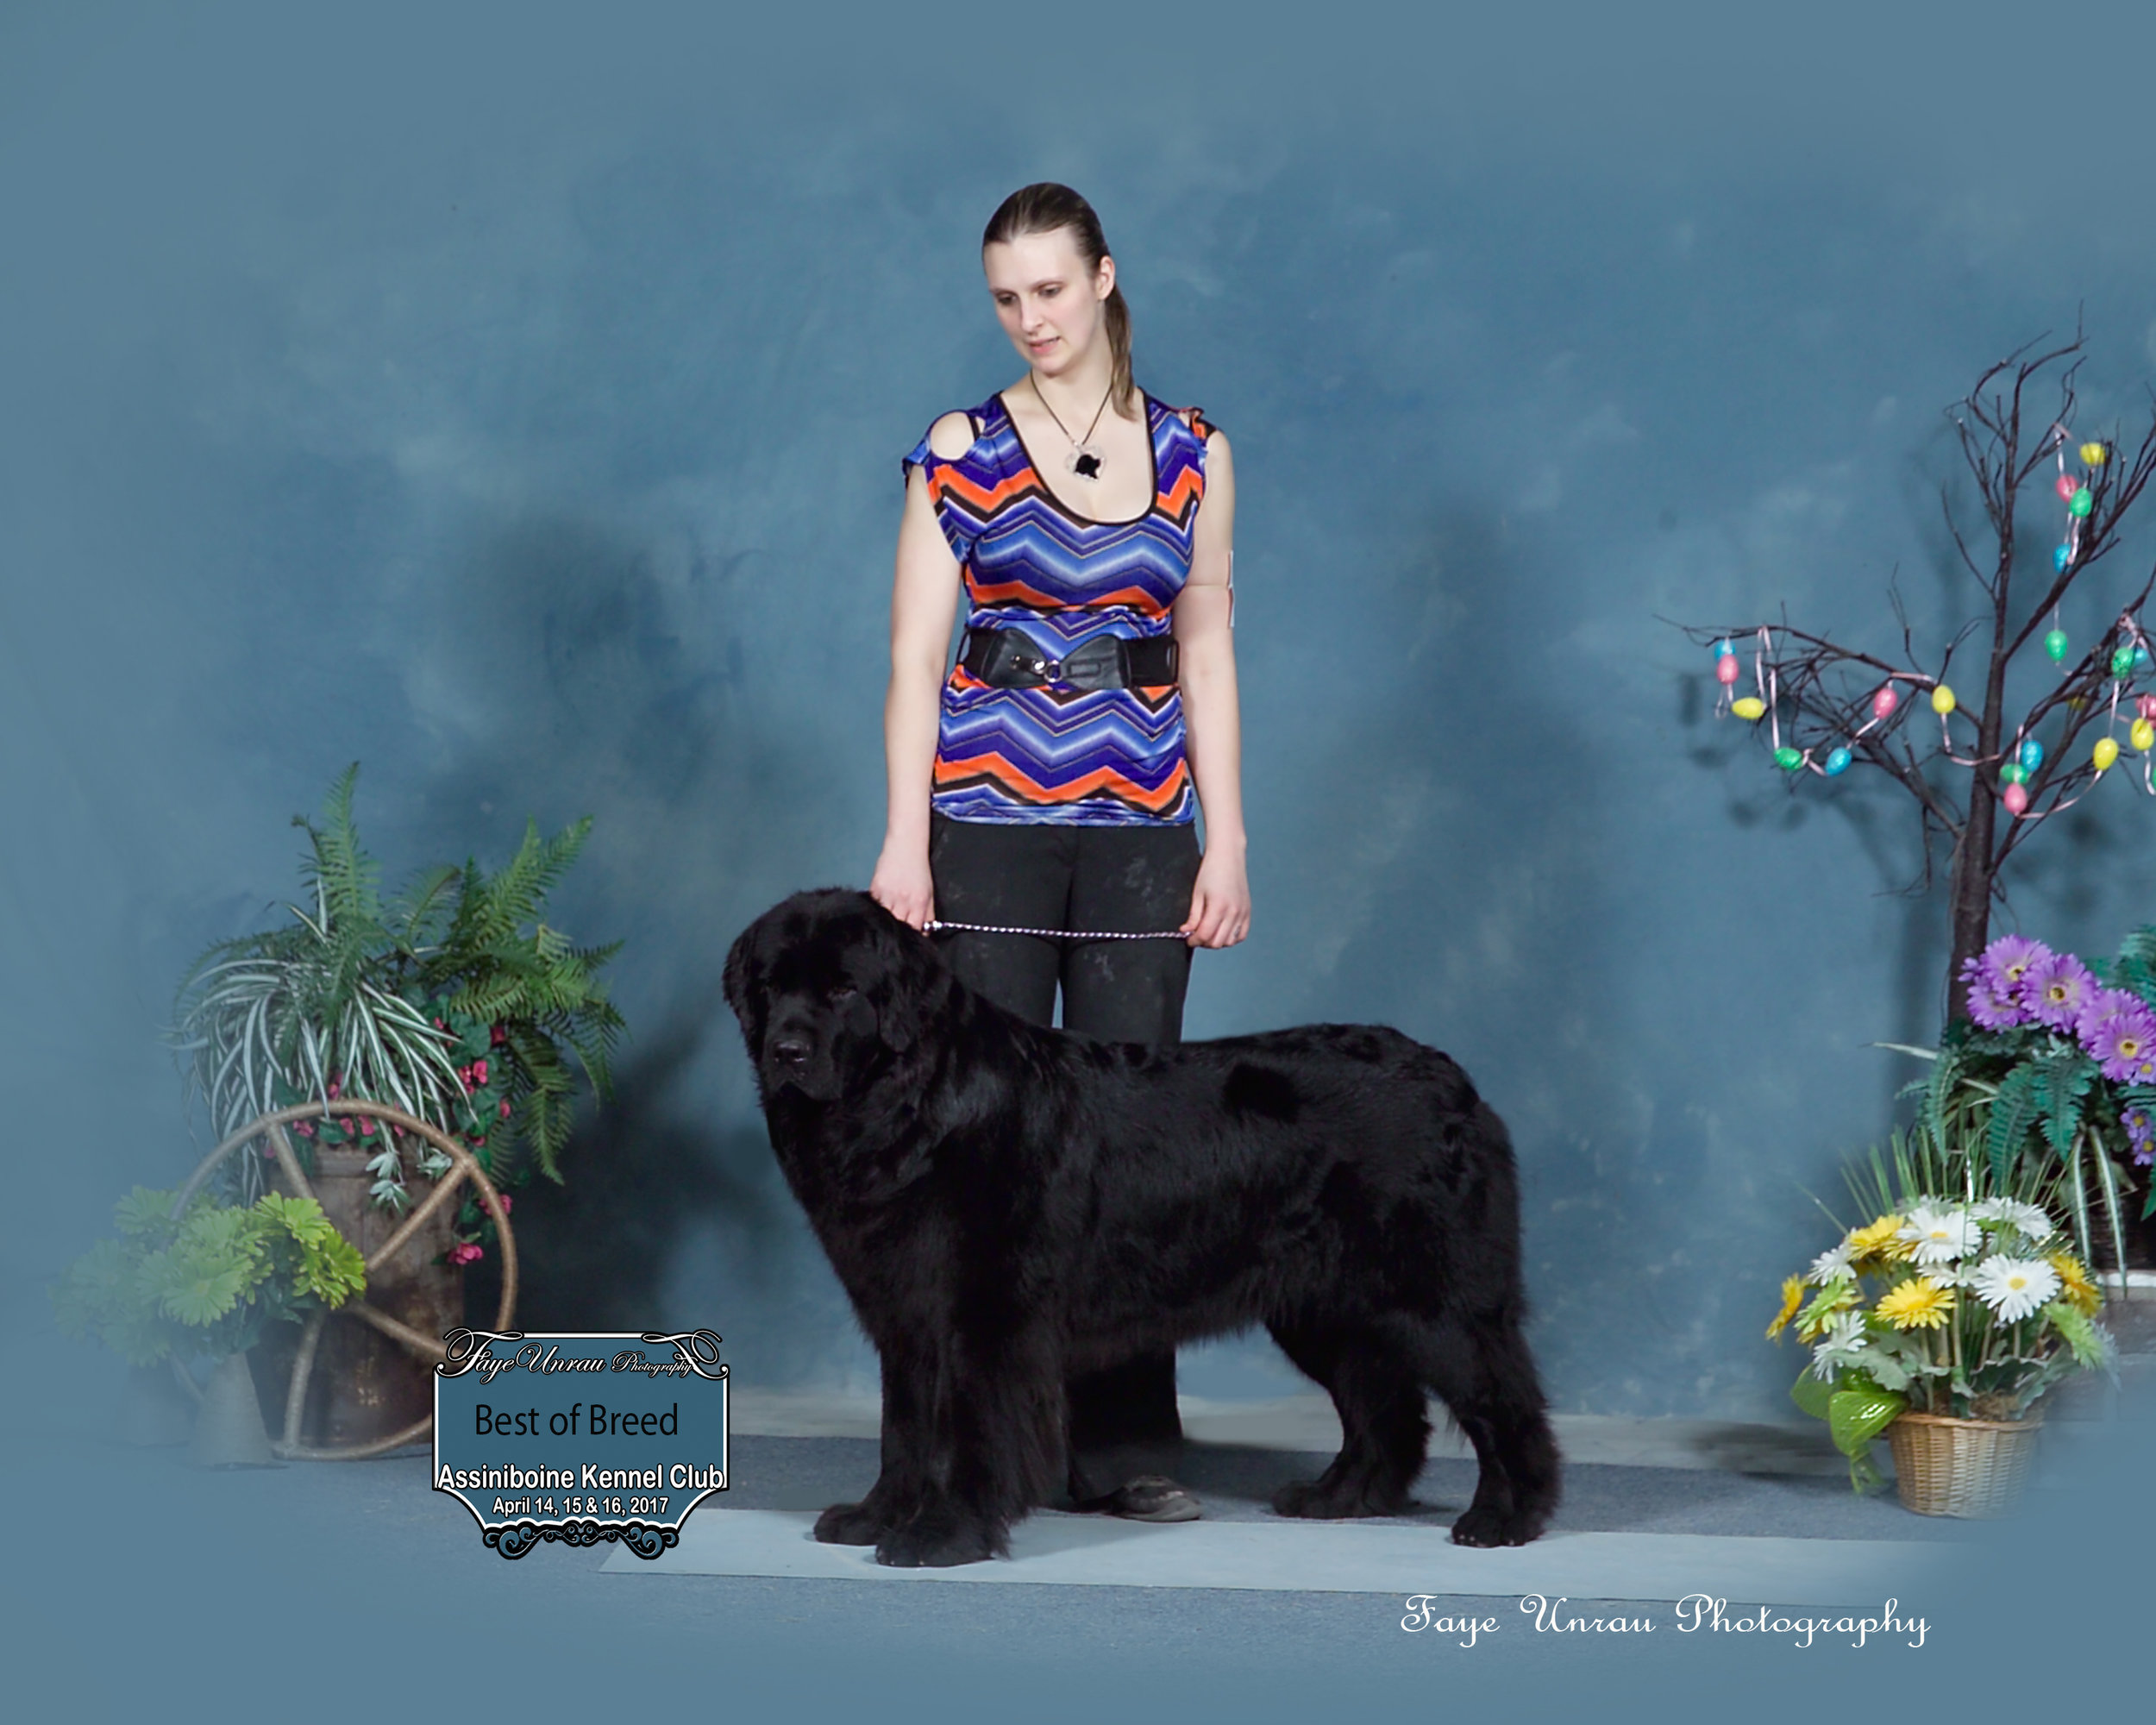 Lanfear, Best of Breed and in coat :)